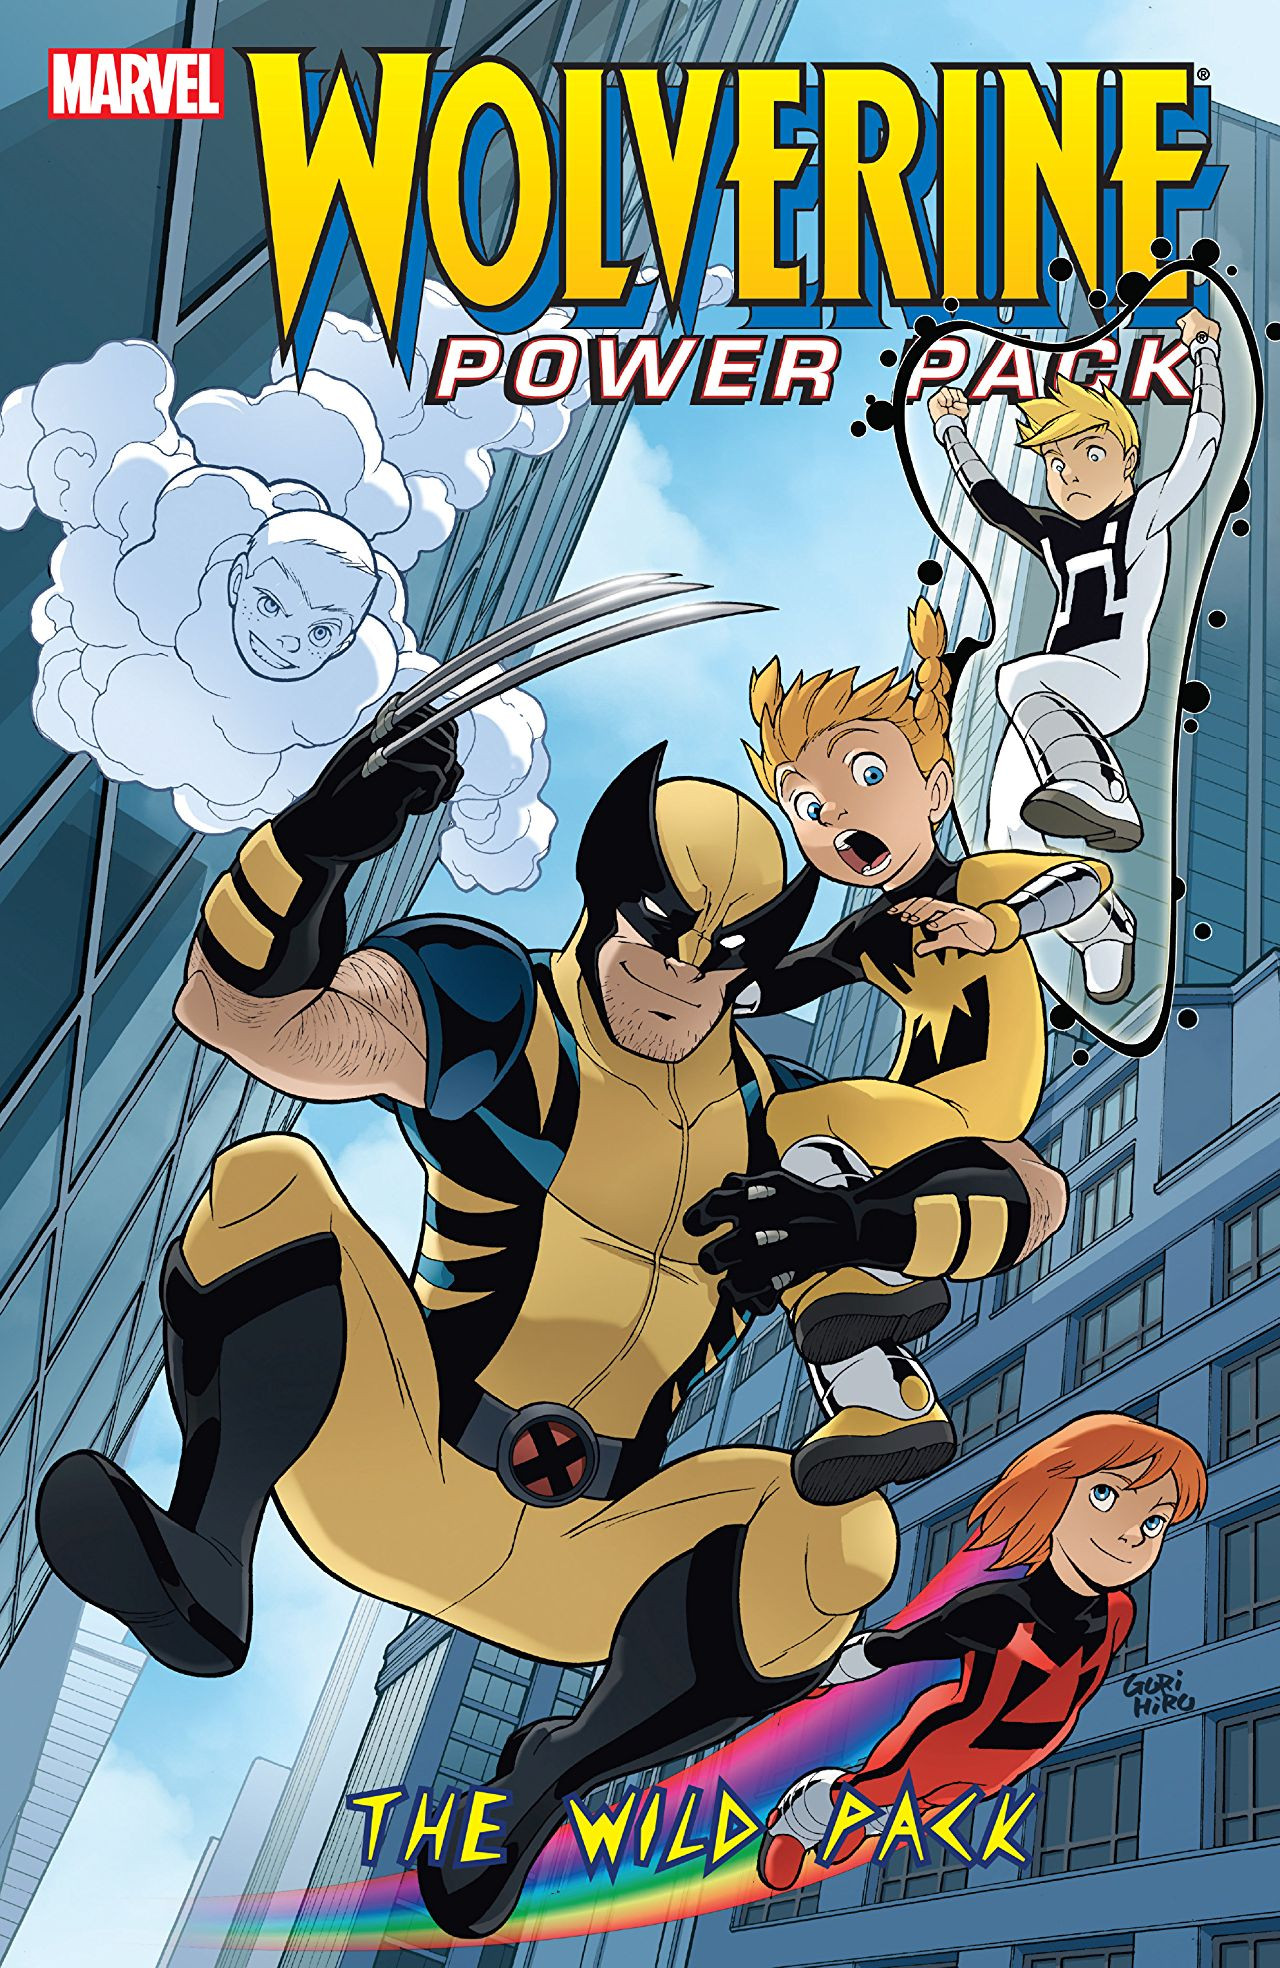 Wolverine and Power Pack TPB Vol 1 1: The Wild Pack